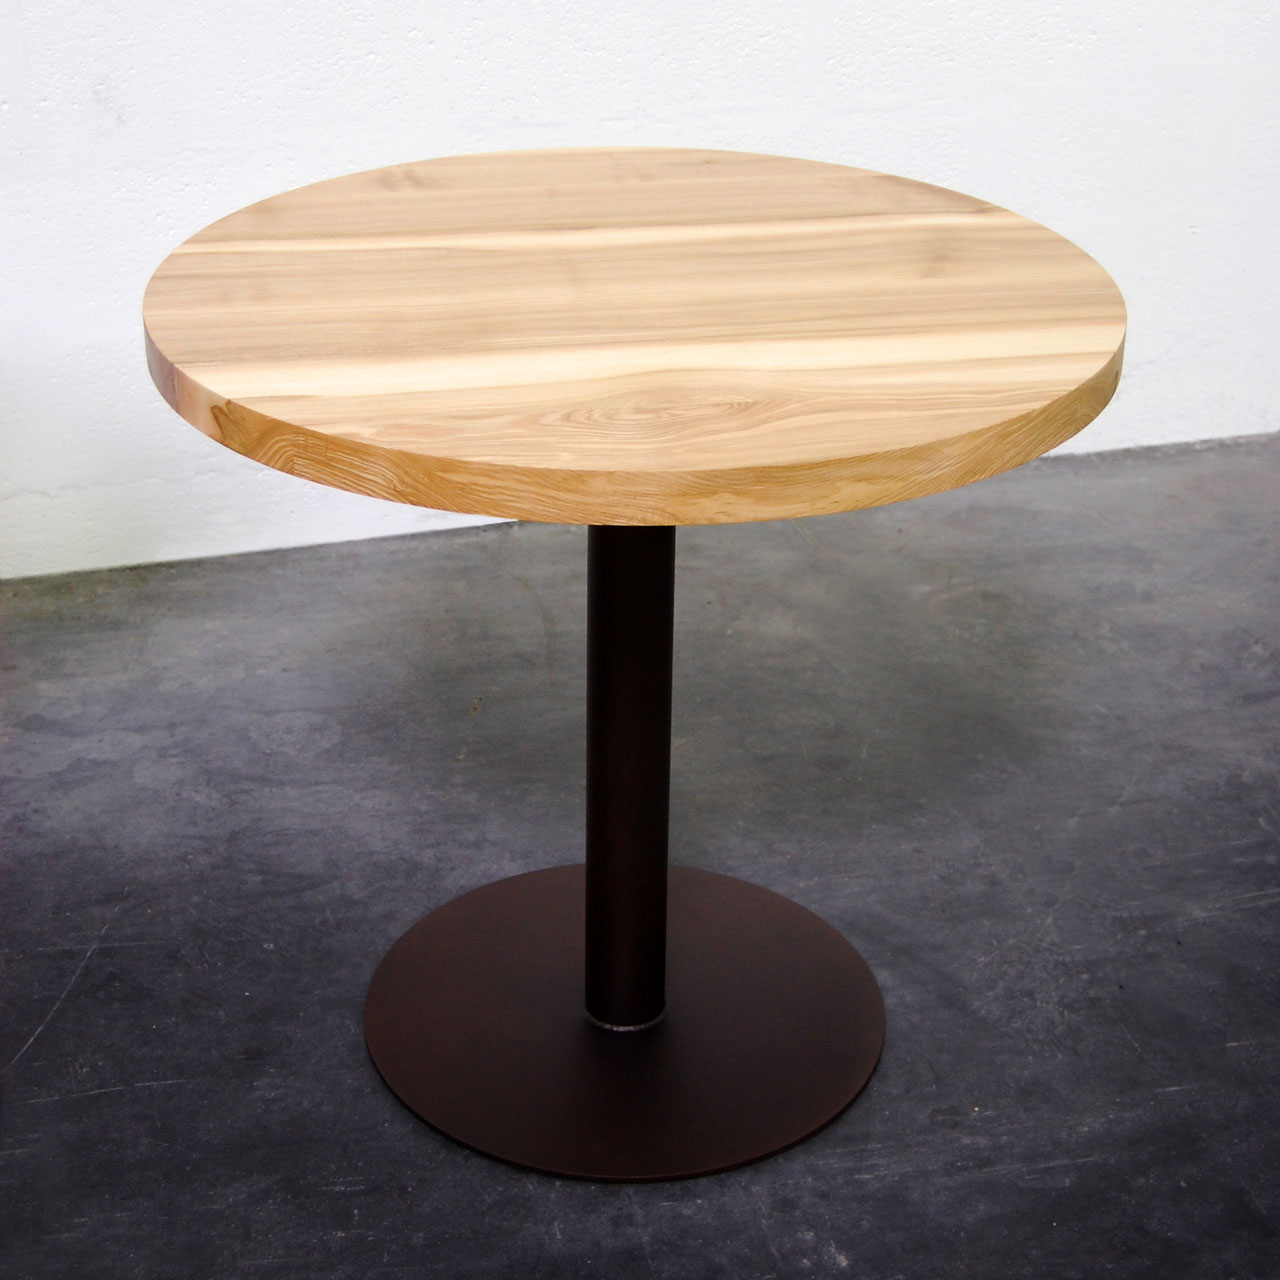 Favori table BISTROT RONDES - ARTMETA / Mobilier sur mesure HG05